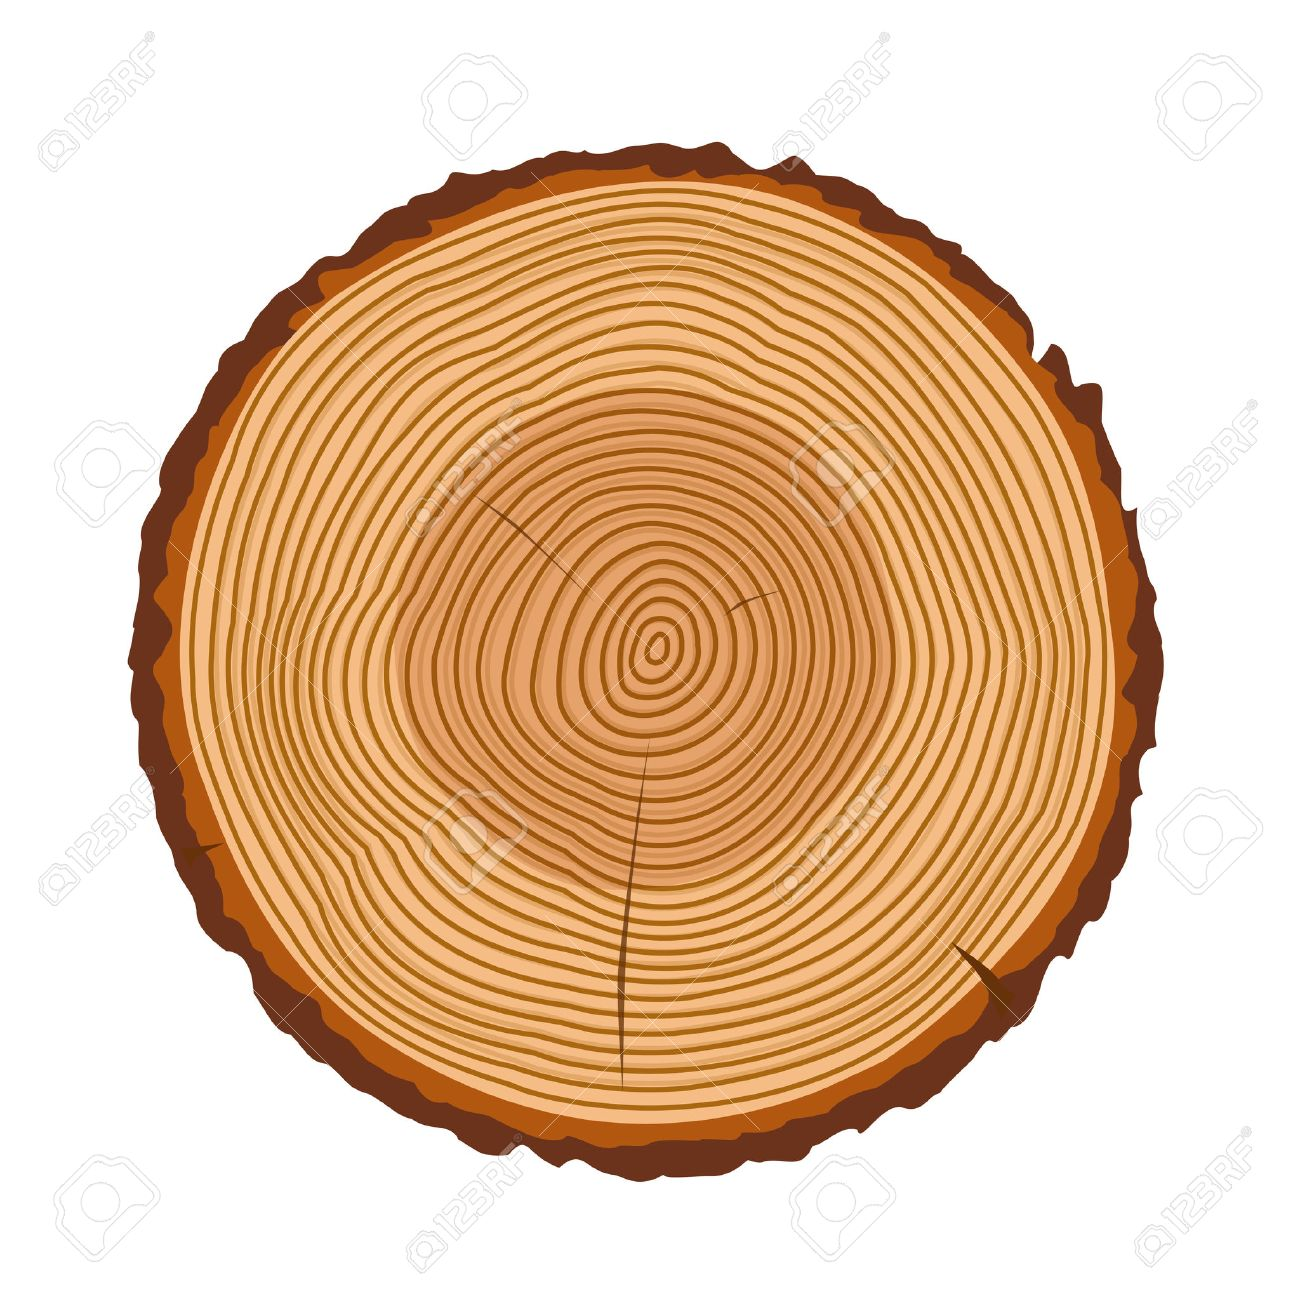 Tree rings, tree trunk rings isolated, wood ring texture, tree rings vector illustration, wooden rings icon with splits and cracks, cracked rings of a tree design - 58024963